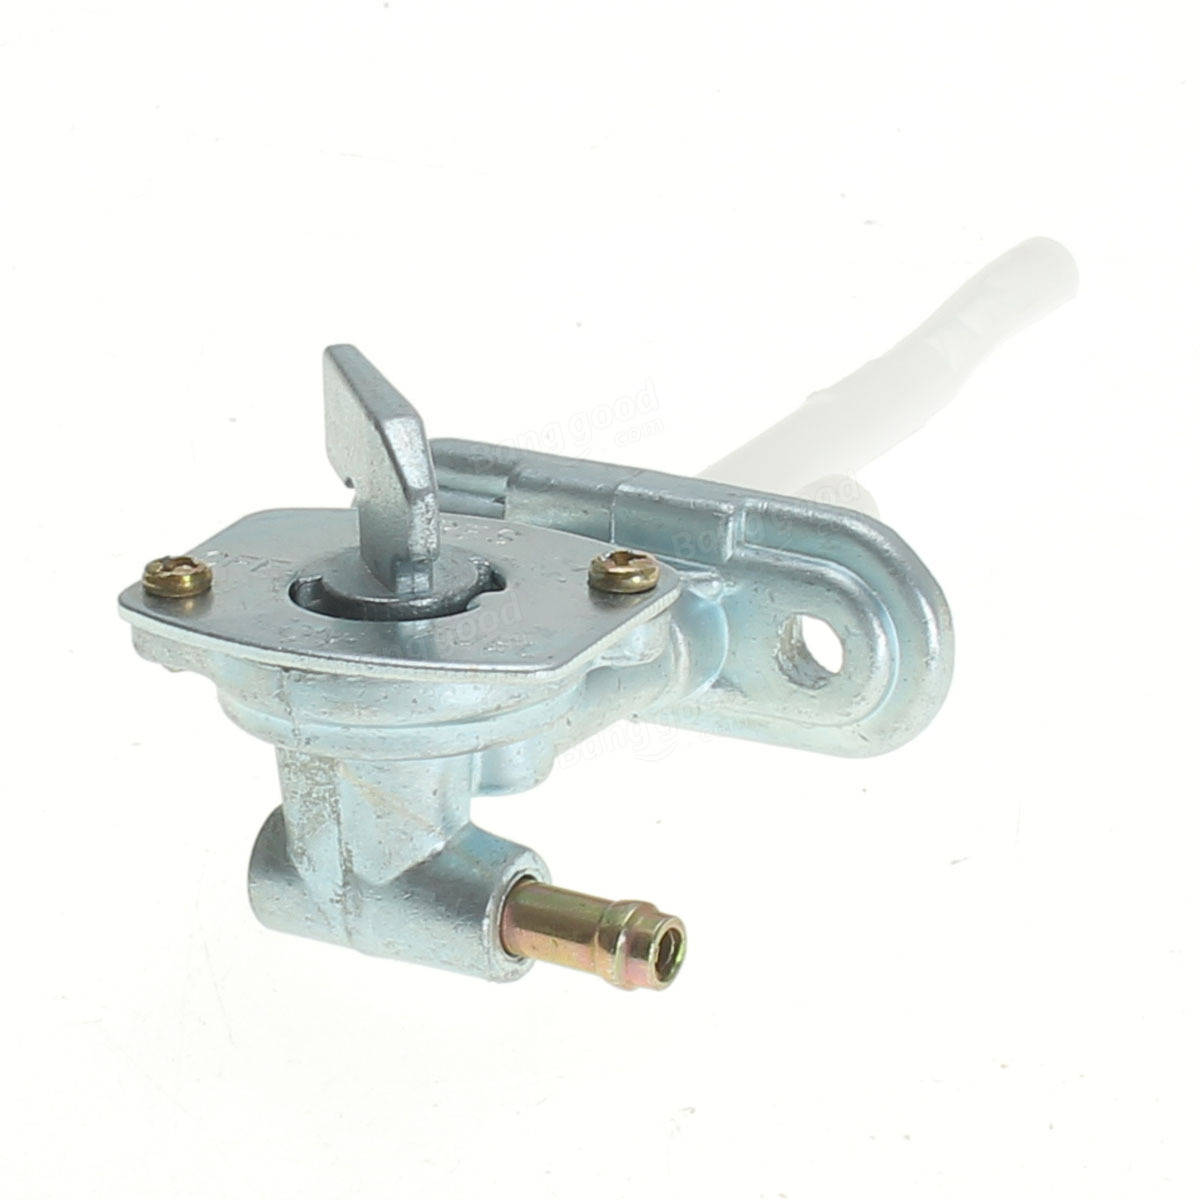 Gas petcock fuel tap valve switch for honda xr50 crf50 50cc 110cc gas petcock fuel tap valve switch for honda xr50 crf50 50cc 110cc pit dirt bike fandeluxe Choice Image